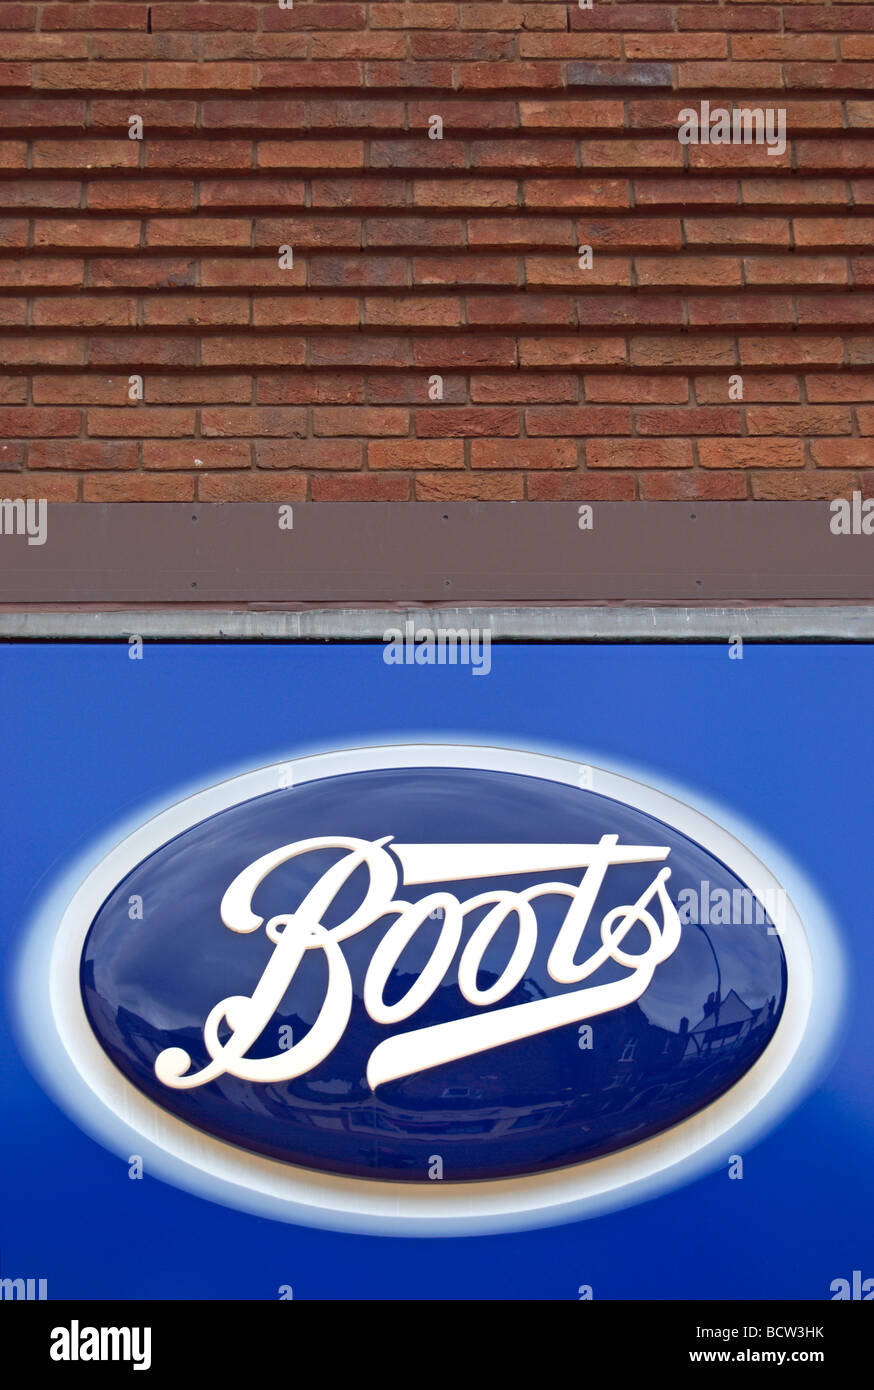 logo of  high street retailer boots the chemist - Stock Image